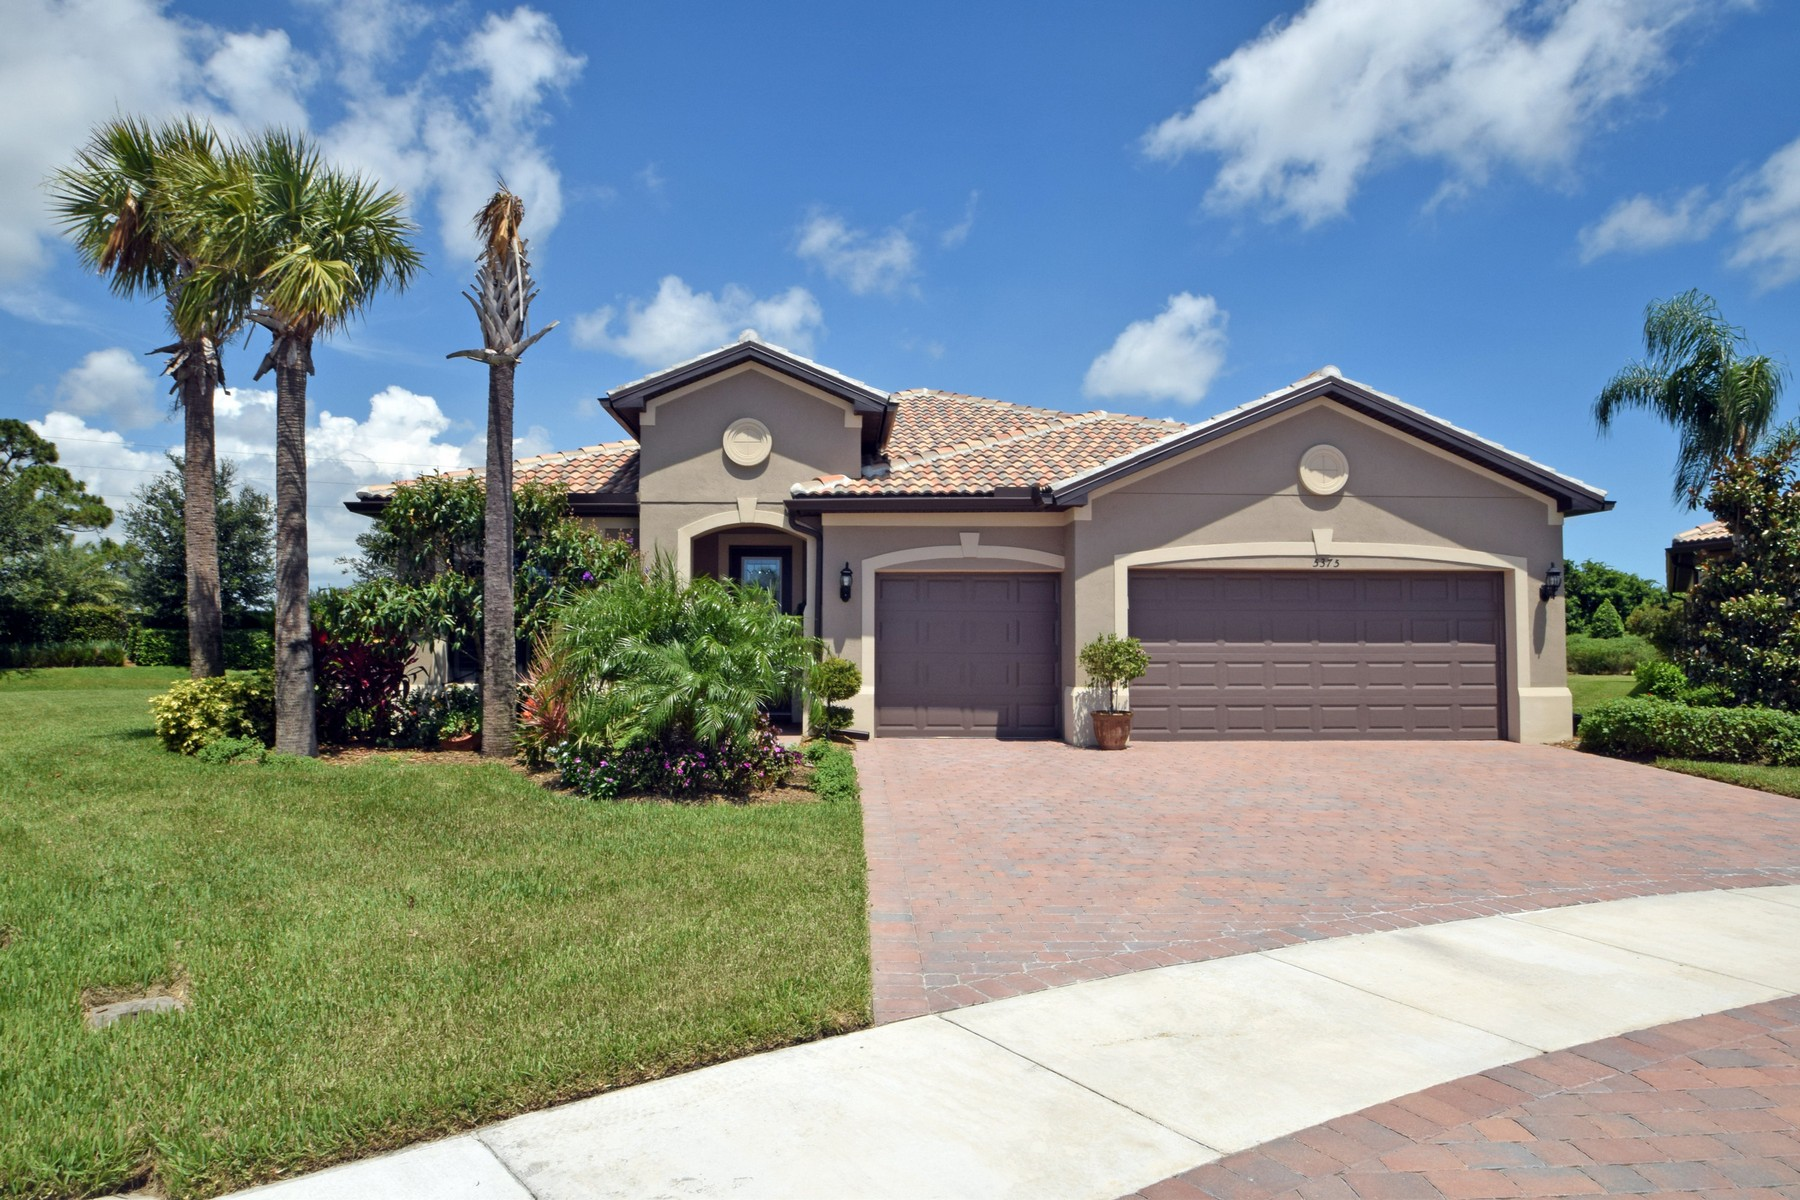 Single Family Home for Sale at DON'T BUILD NEW, THIS HOME IS BETTER! 5375 Antigua Circle Vero Beach, Florida, 32967 United States